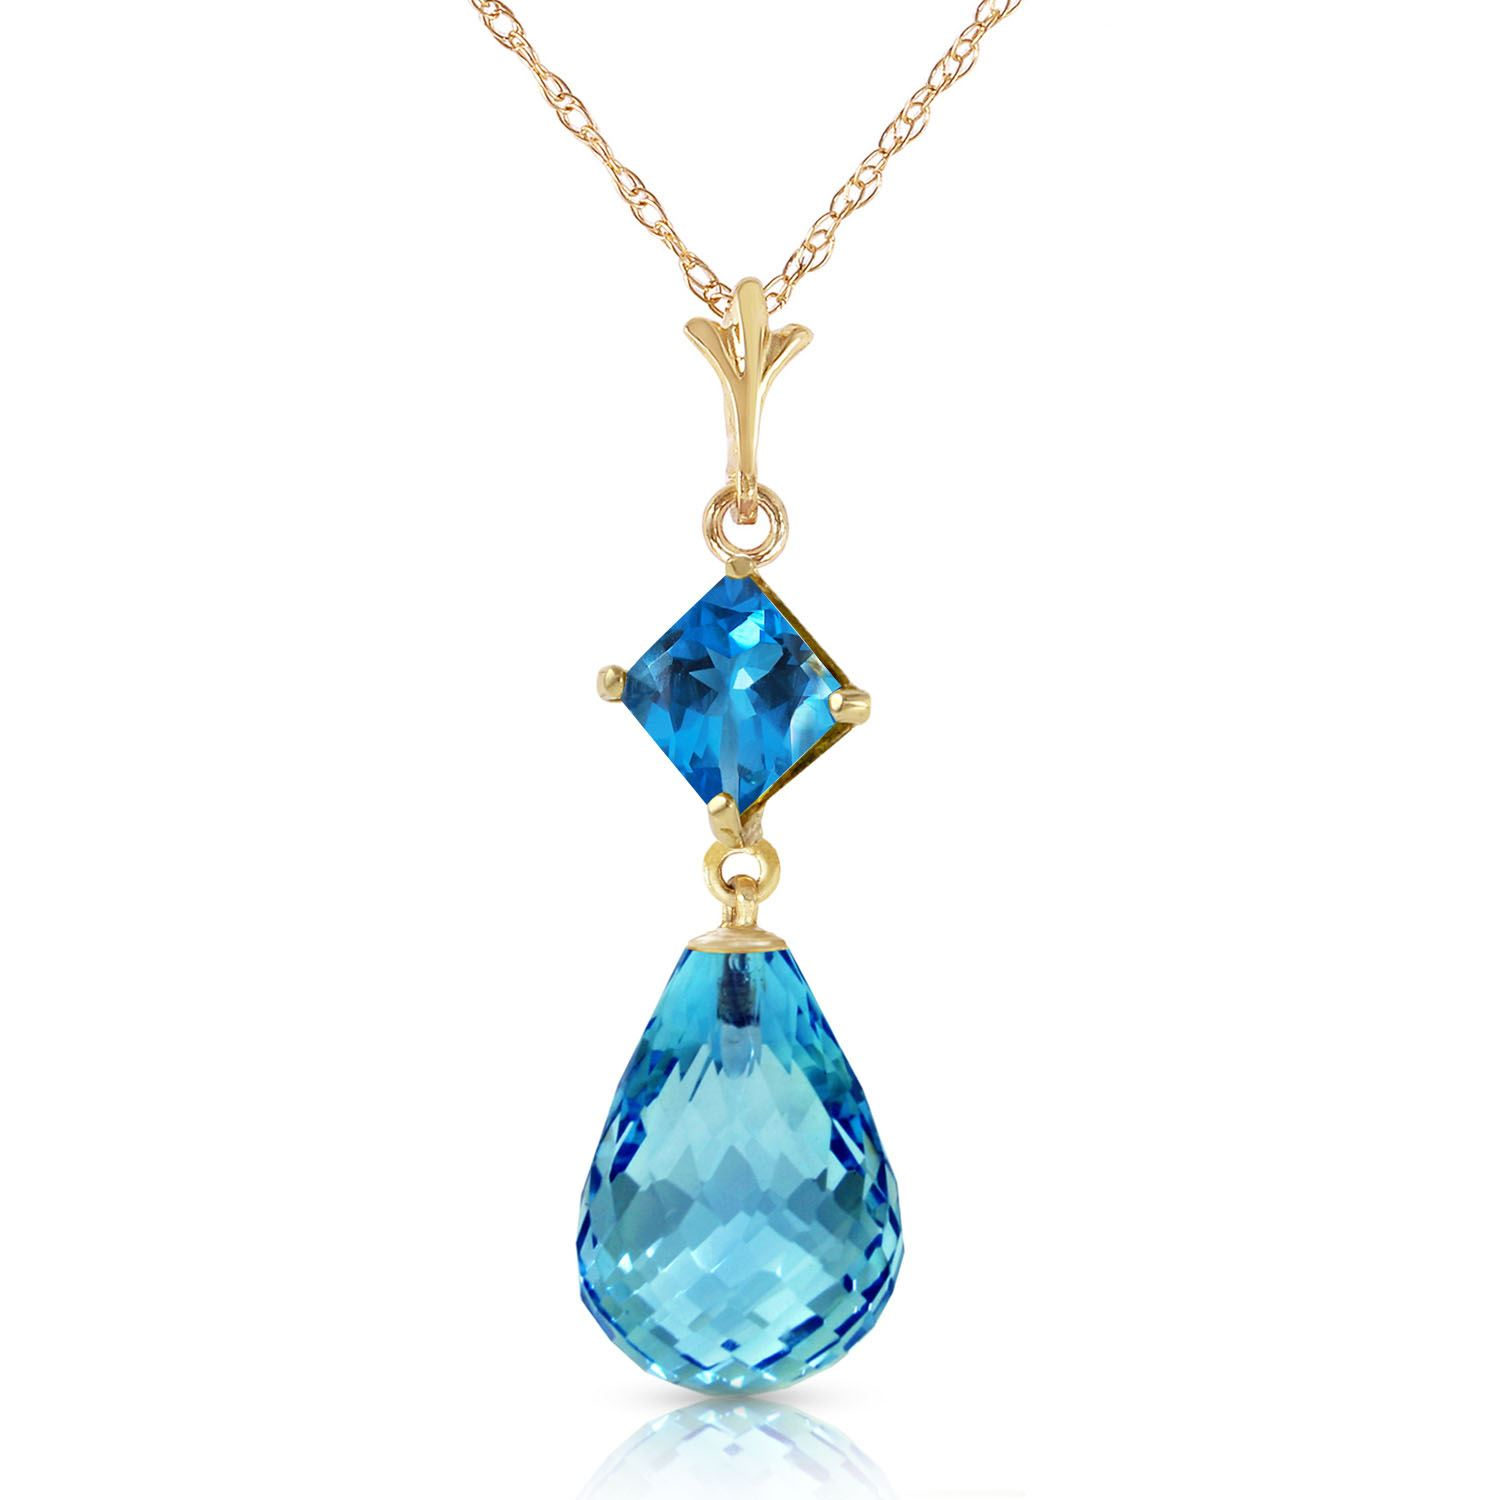 ALARRI 3.12 Carat 14K Solid White Gold Here I Stand Blue Topaz Necklace with 20 Inch Chain Length